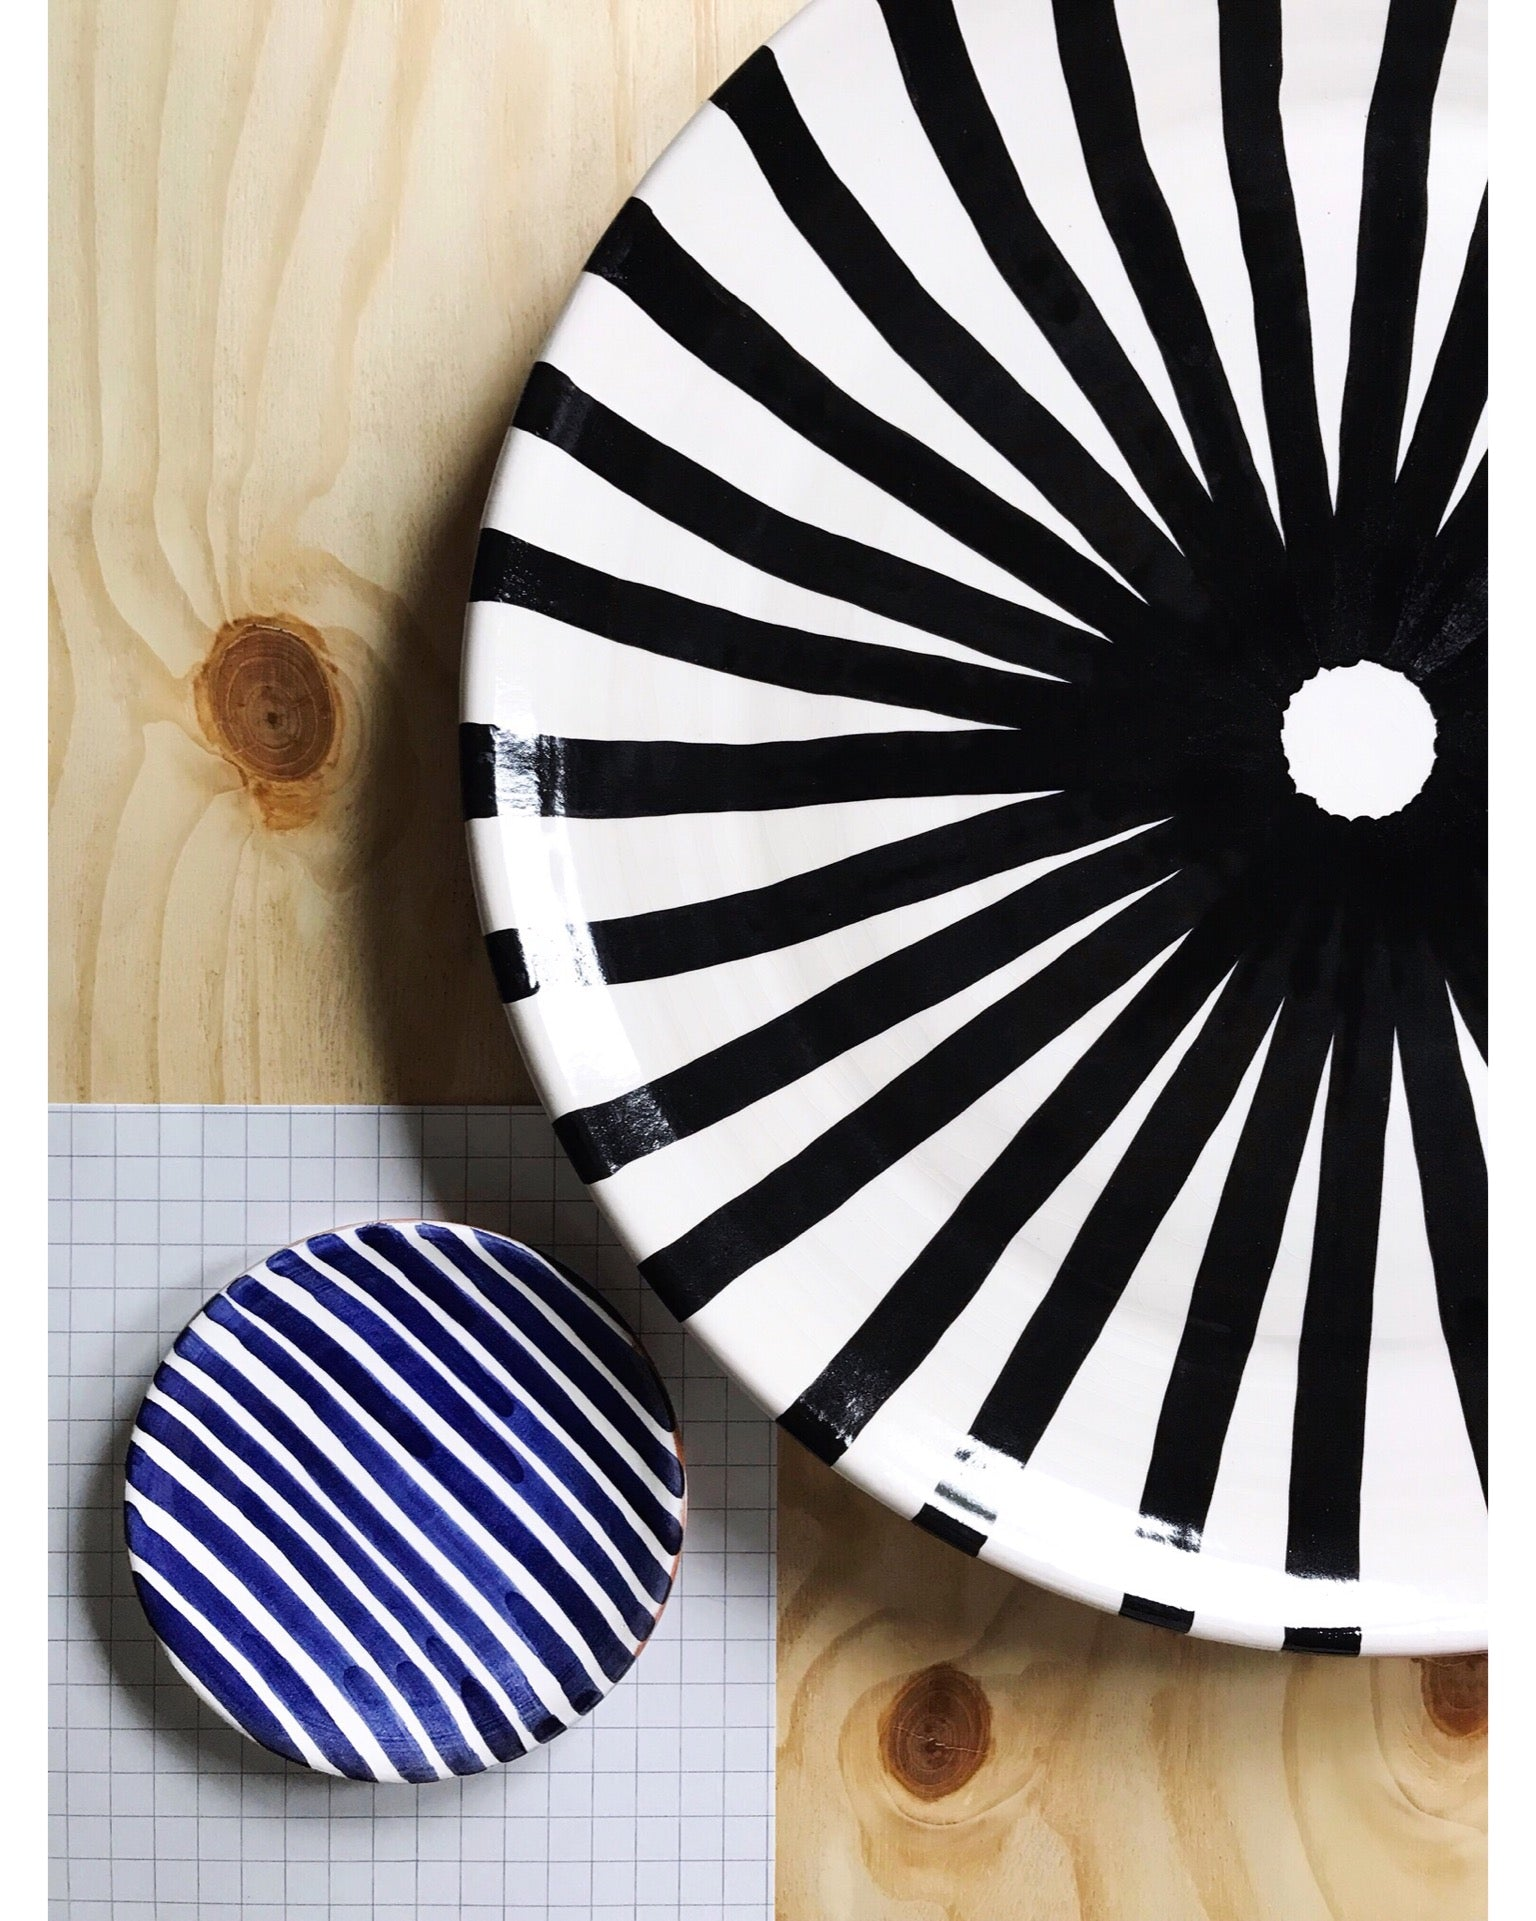 Handmade ceramic plate geometric pattern black and white B&W